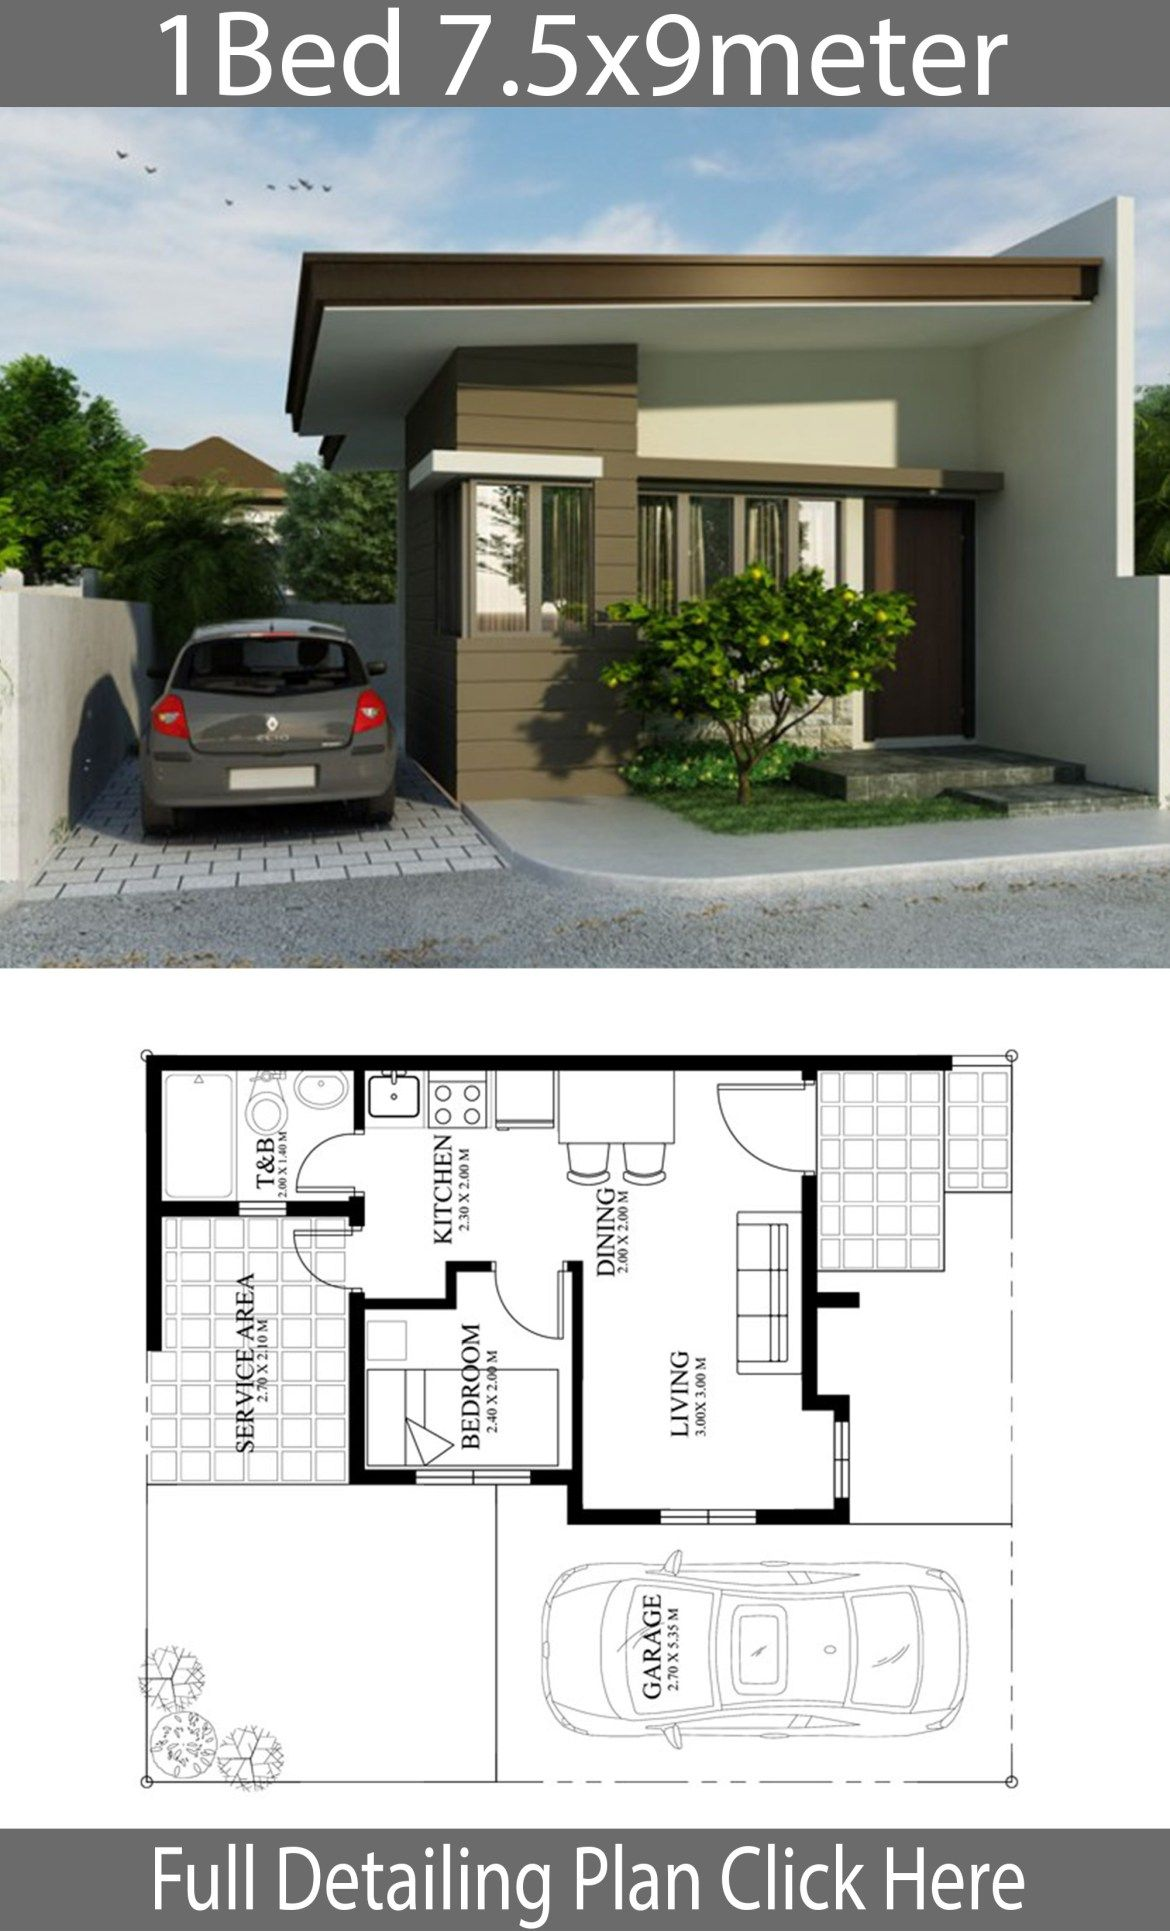 Small Home Design Plan 7 5x9m With One Bedrooms Home Planssearch Small House Design Plans Small House Design Small House